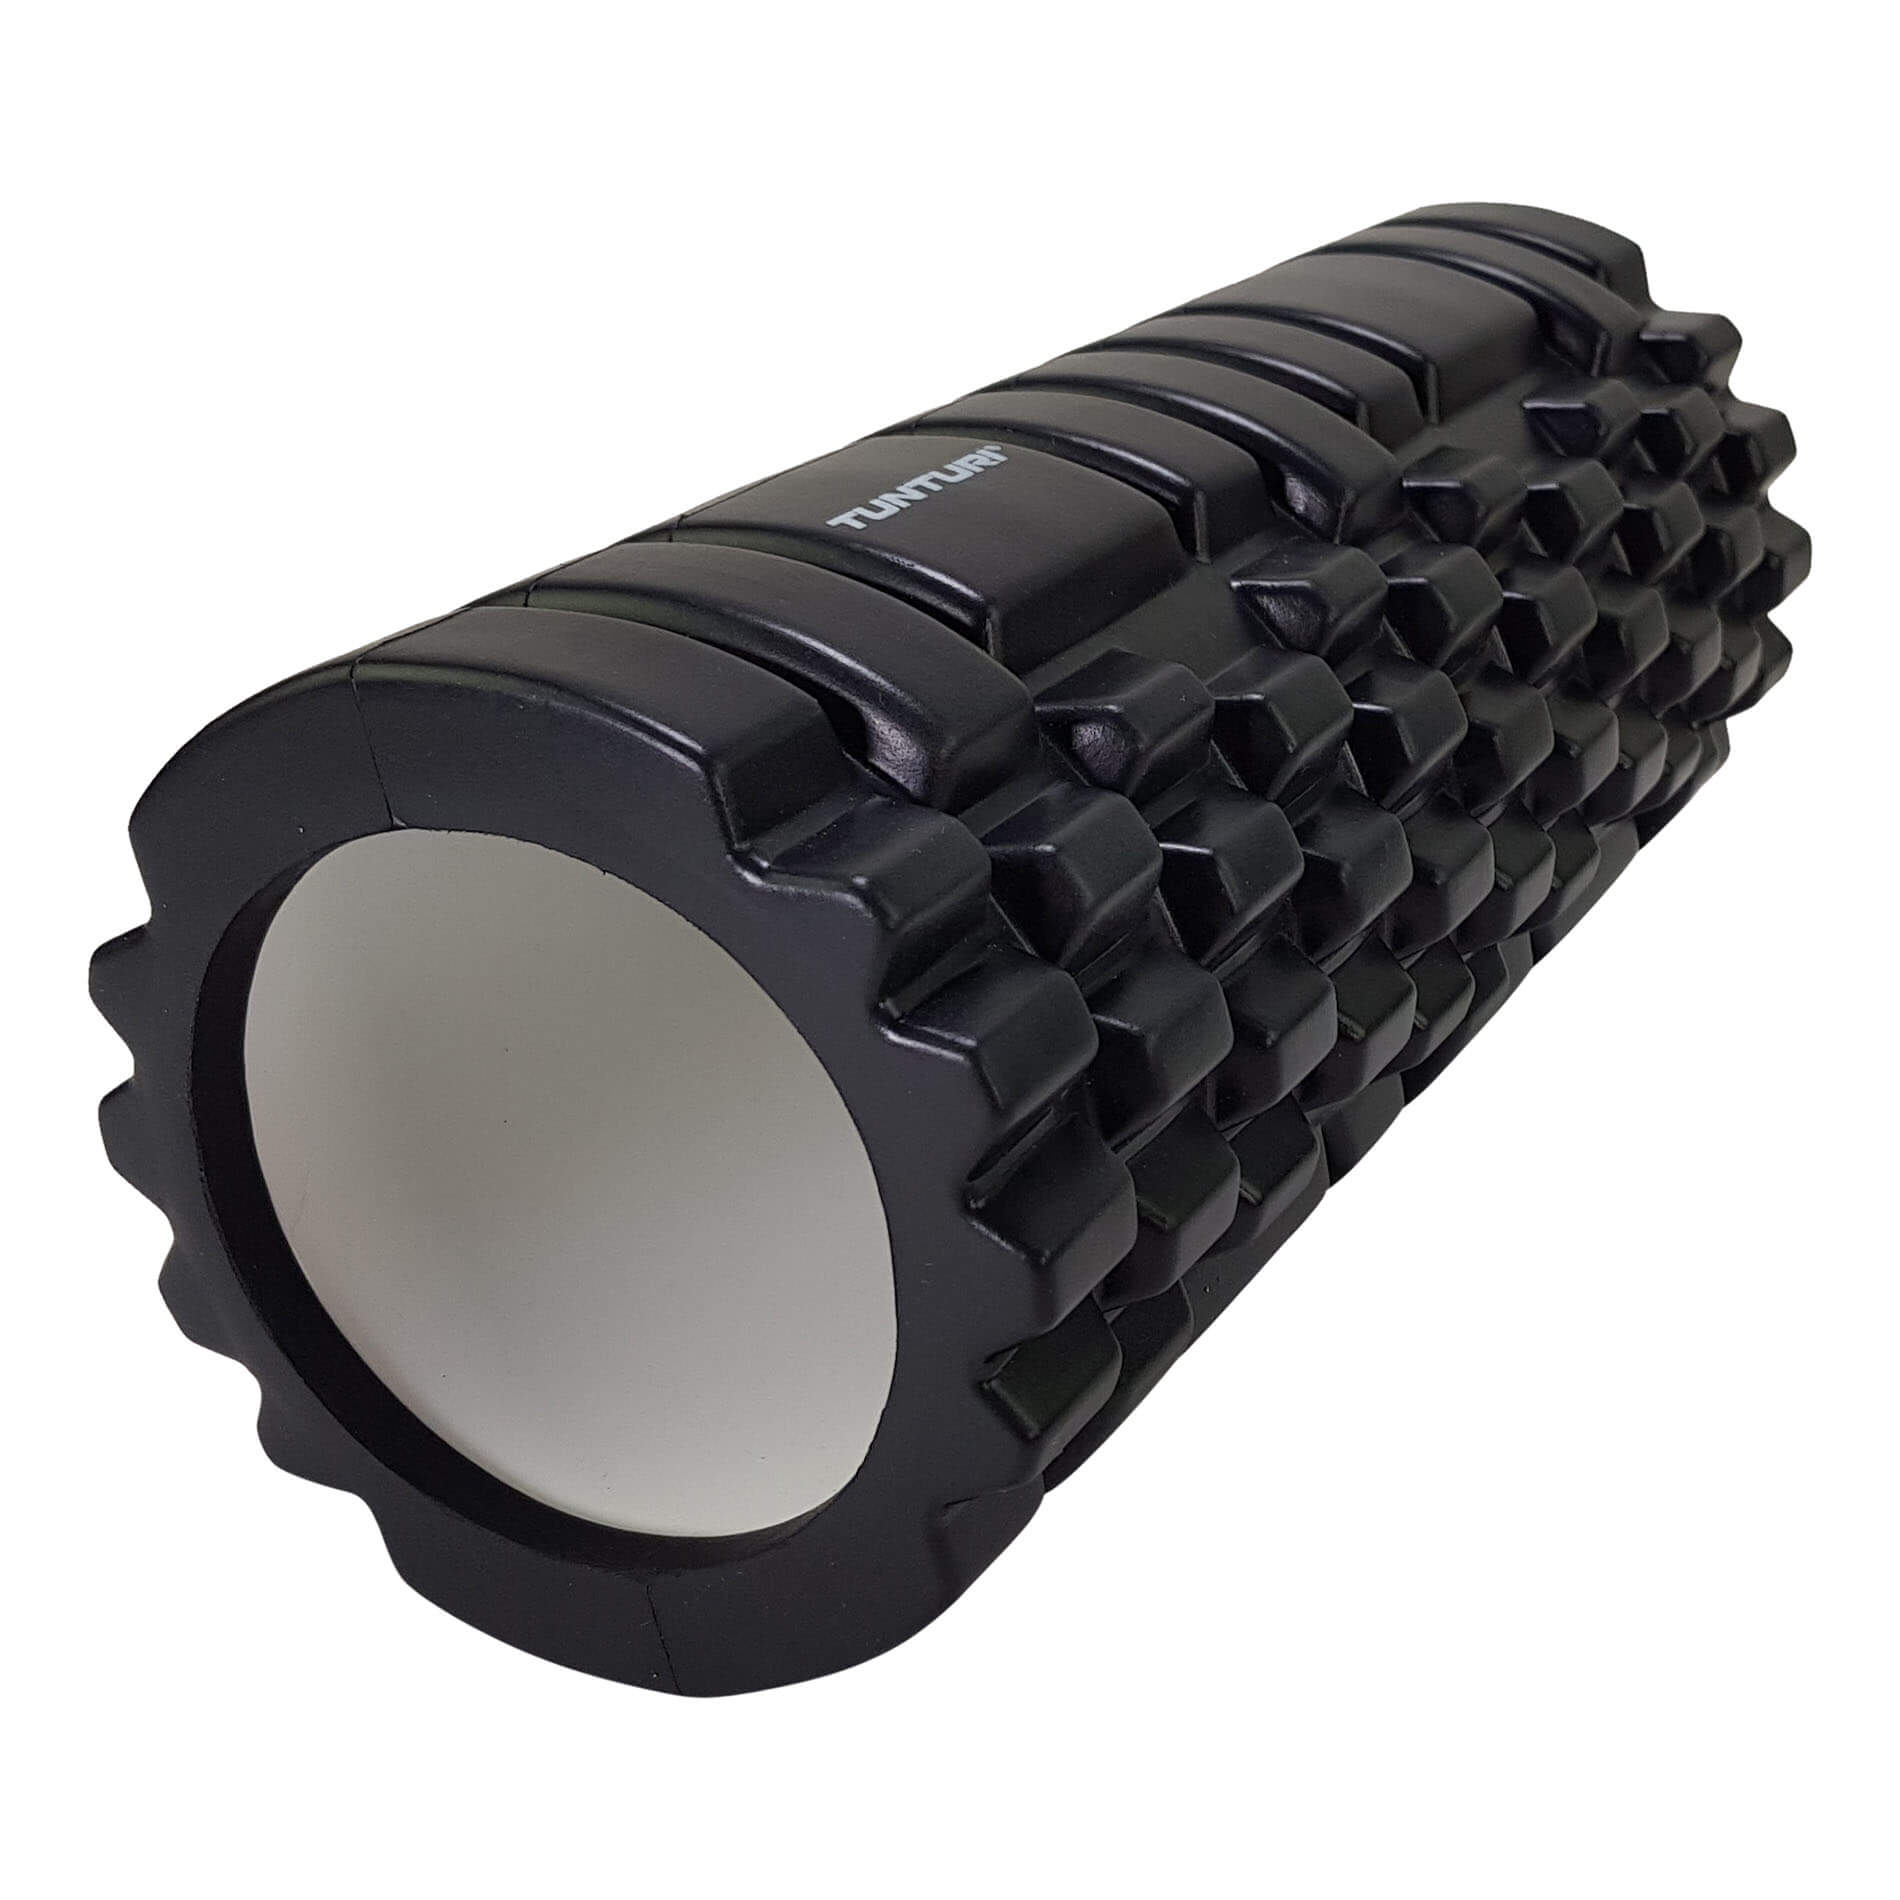 Yoga Foam Grid Roller